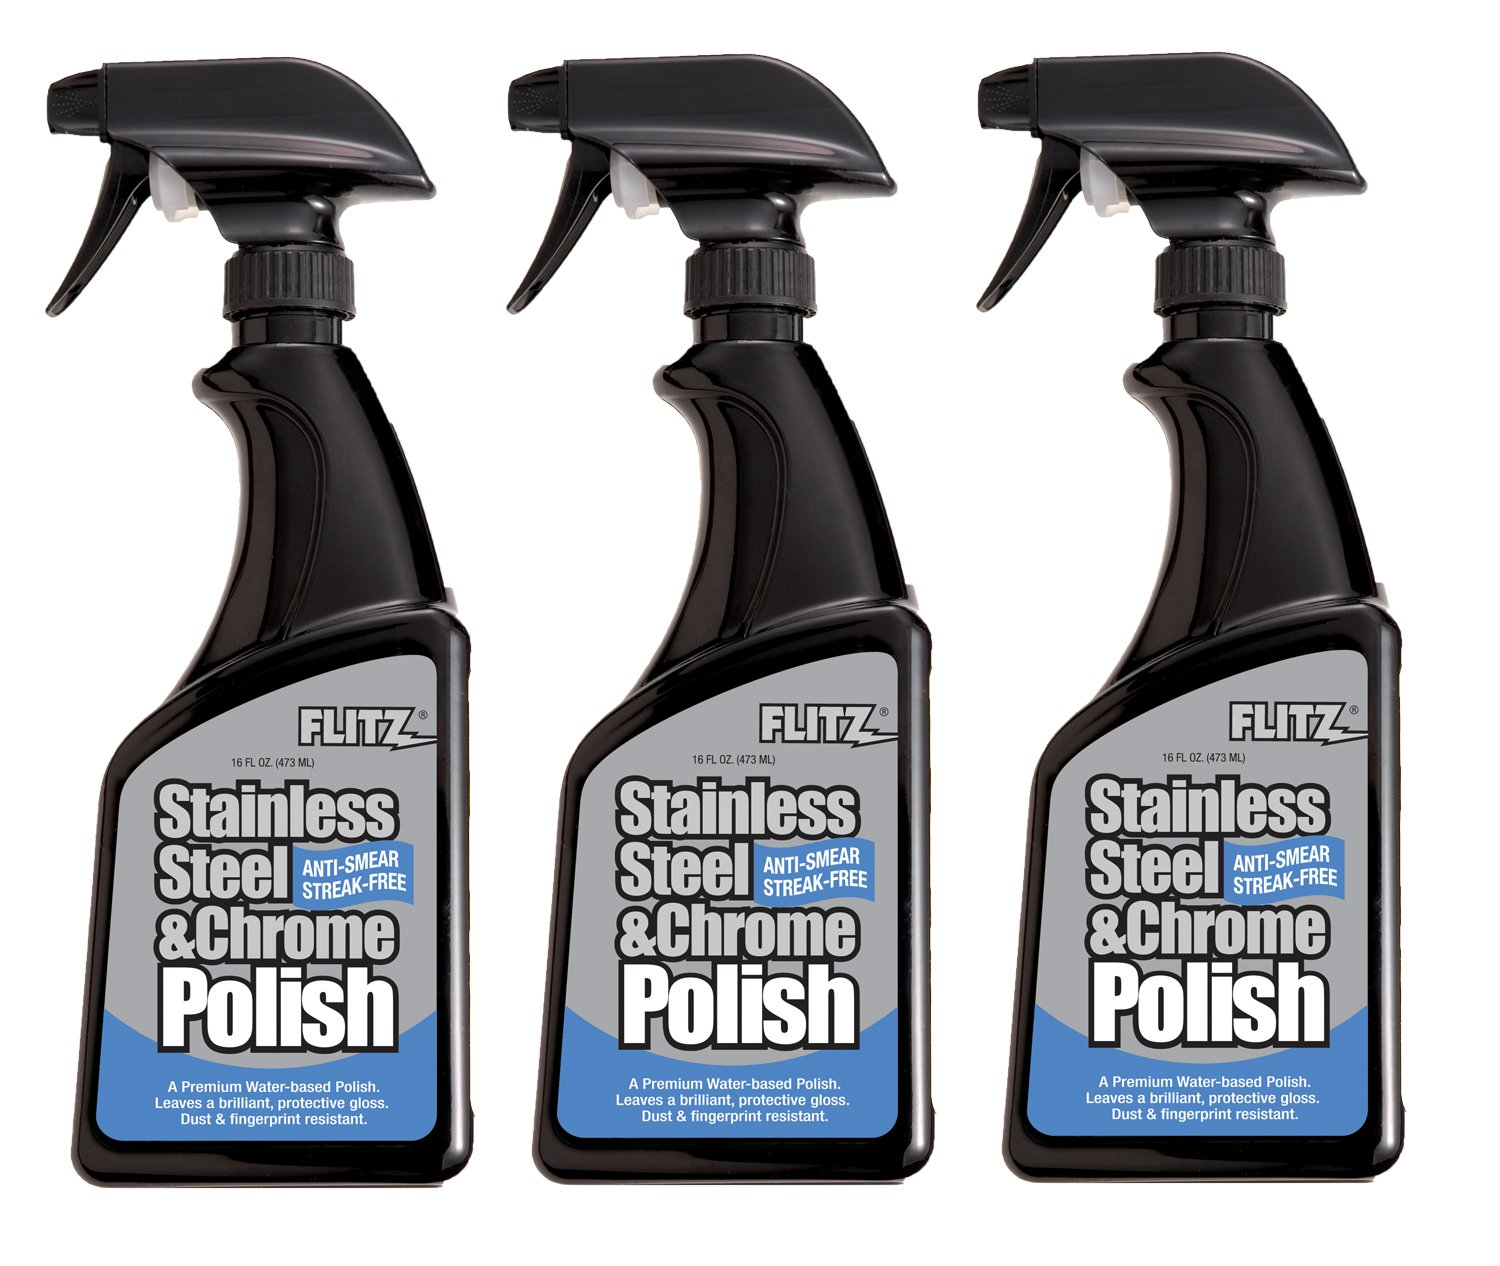 Flitz SS 01306-12A Stainless Steel Polish, 16 oz. Spray Bottle, 12-Pack